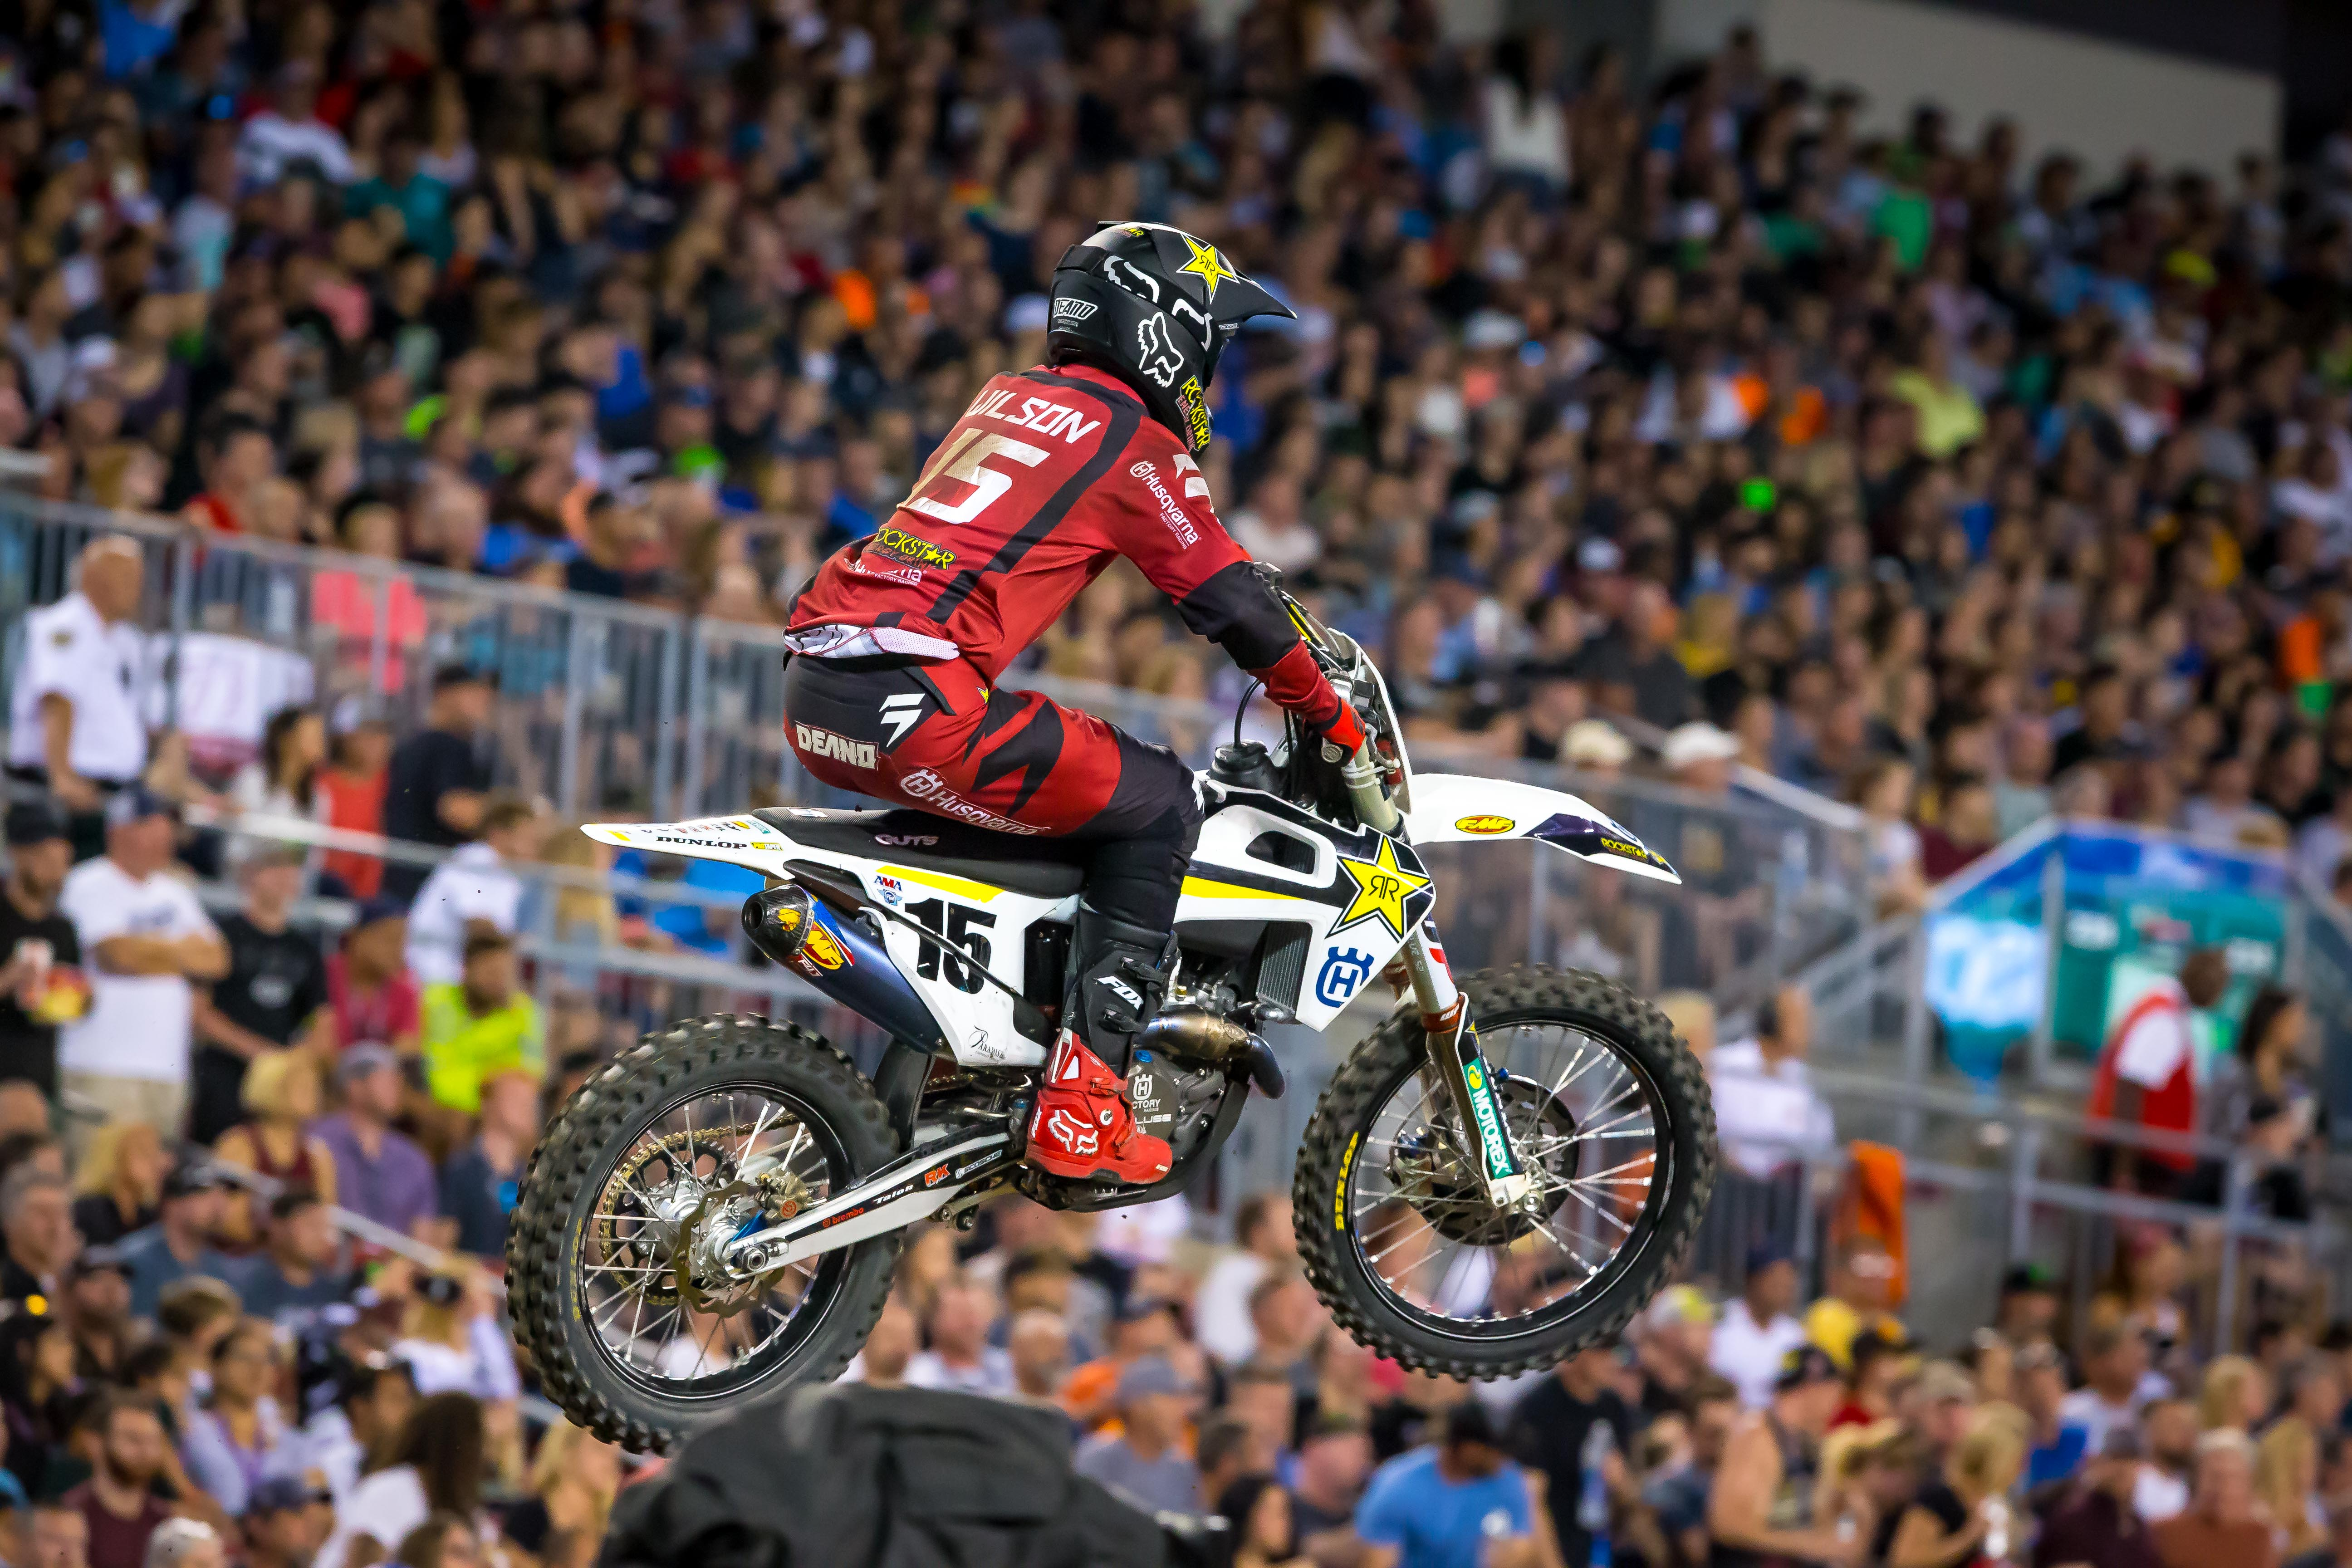 Husqvarna Factory Racing - Dean Wilson had his best finish of the season with a 7th in the 450 class.